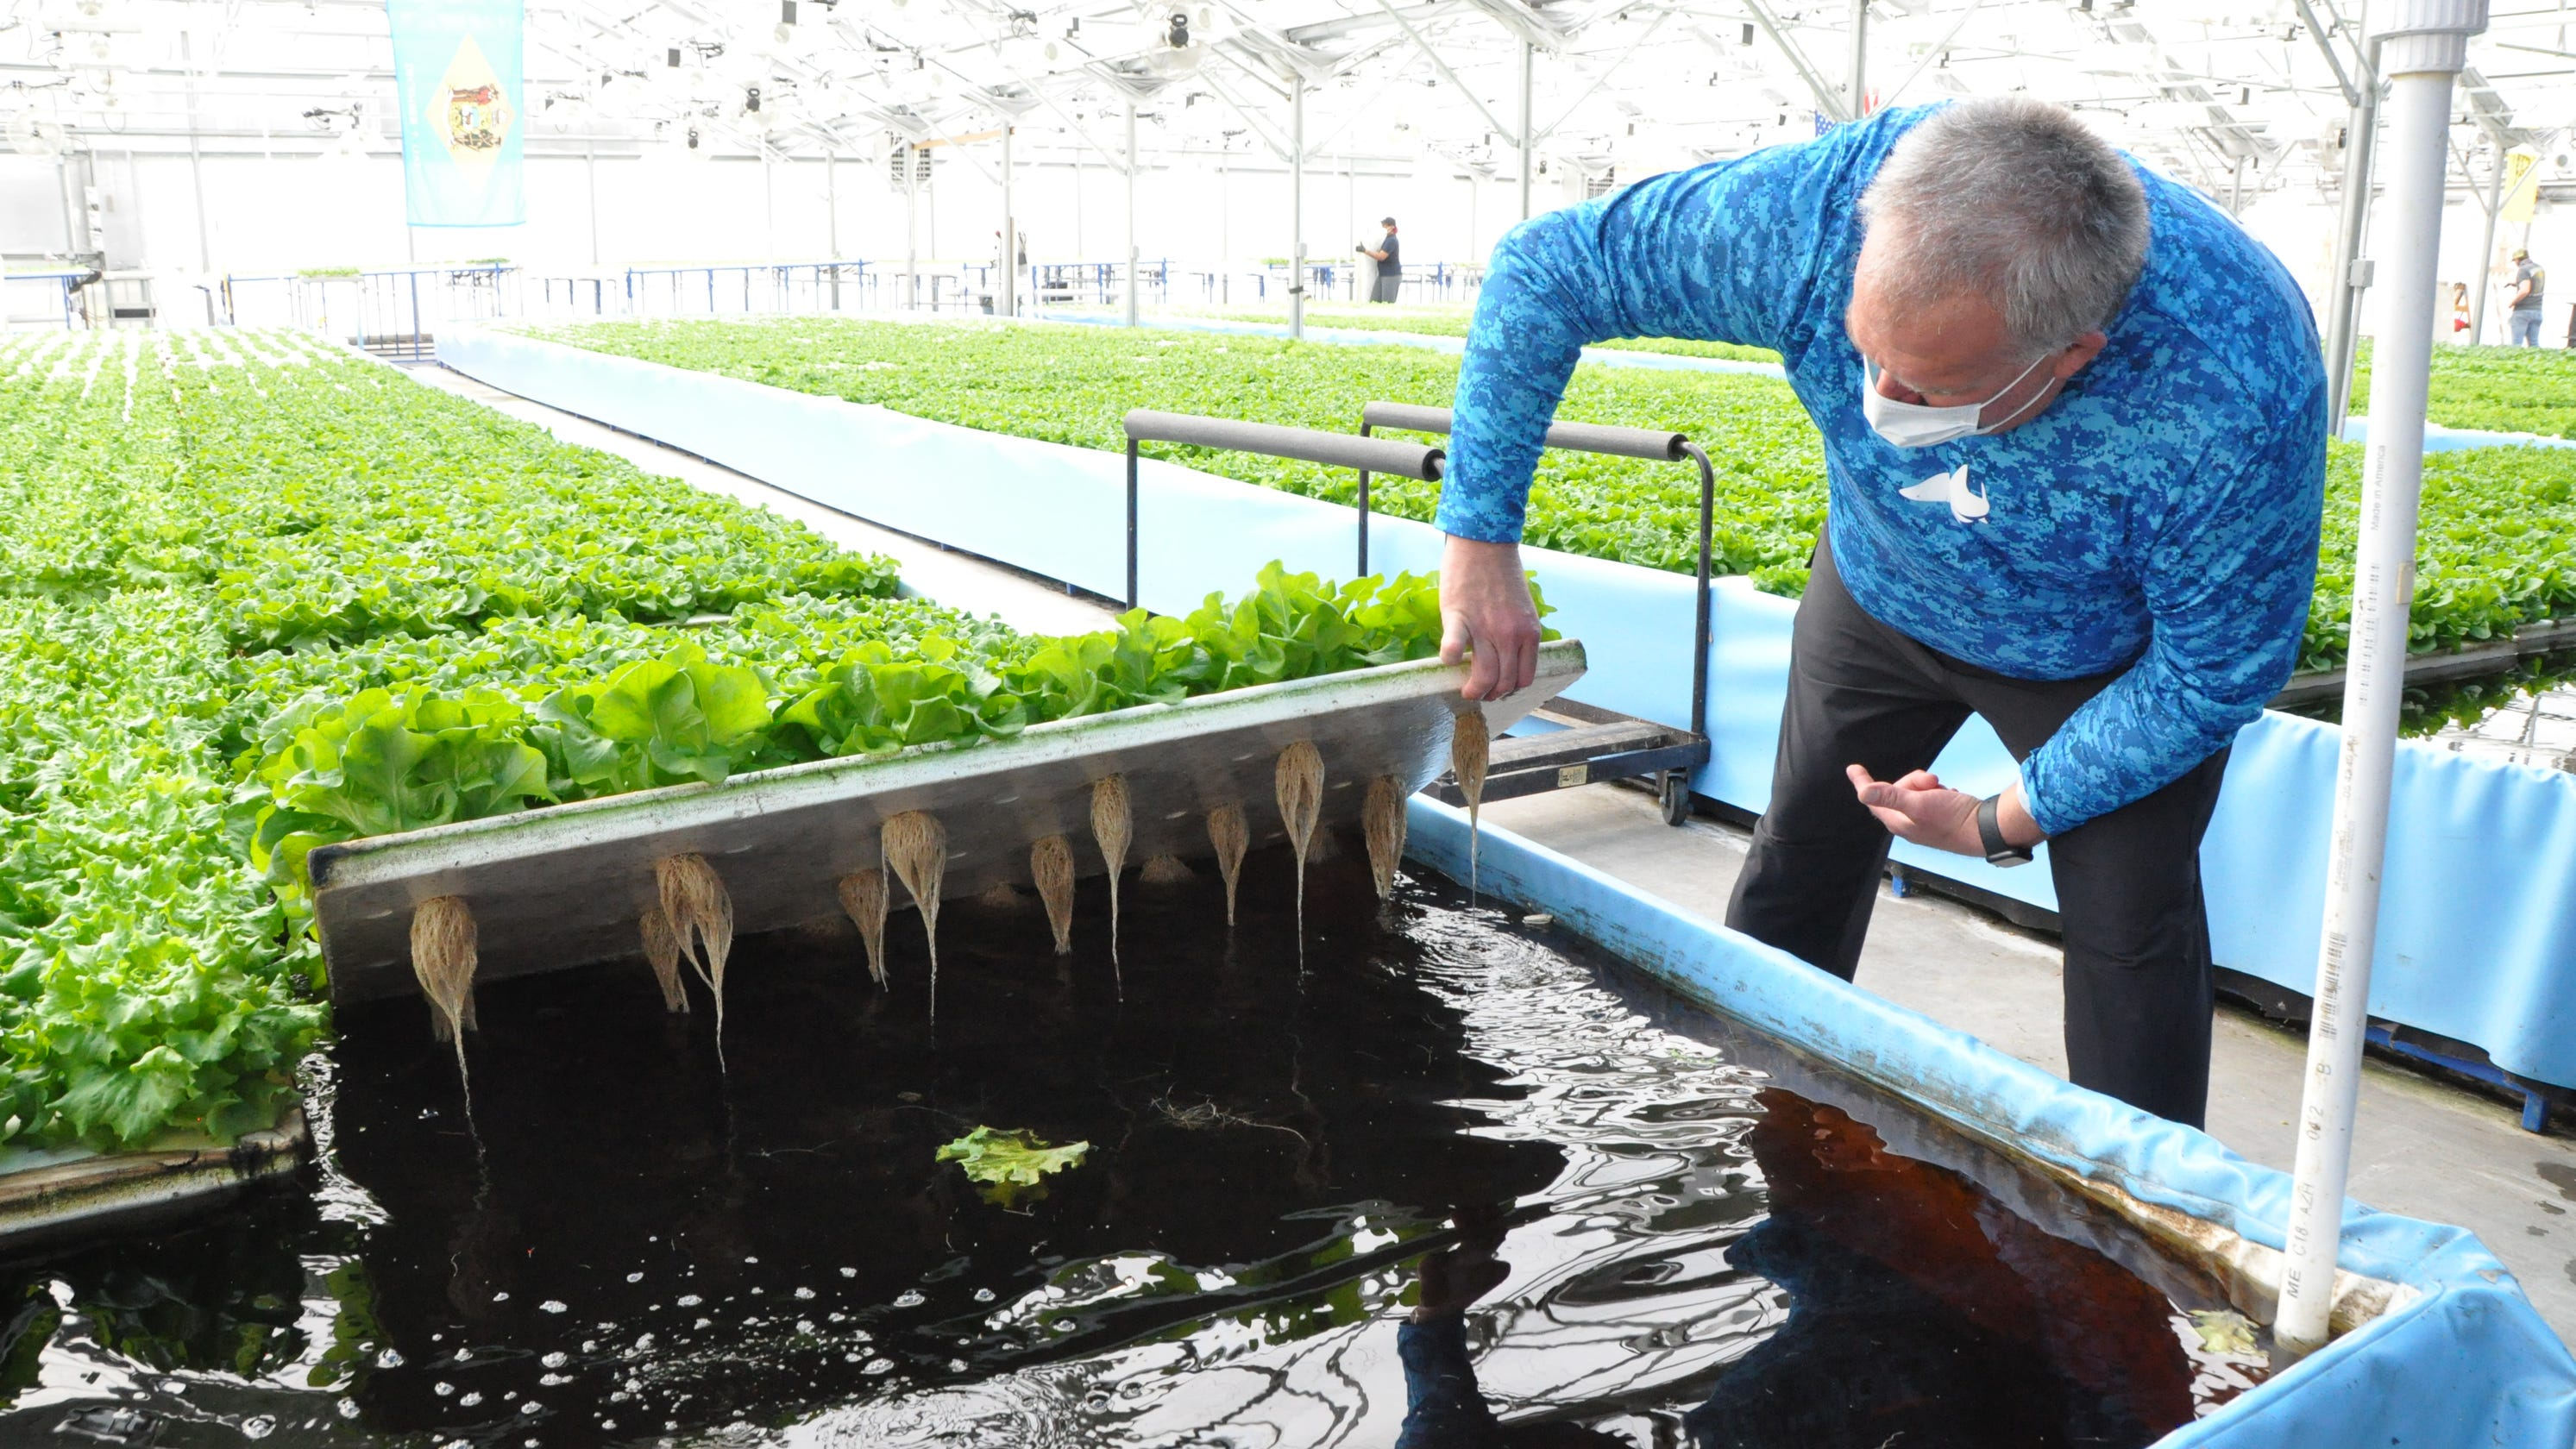 Delaware entrepreneurs start growing crops in water. Will hydroponic farms catch on?